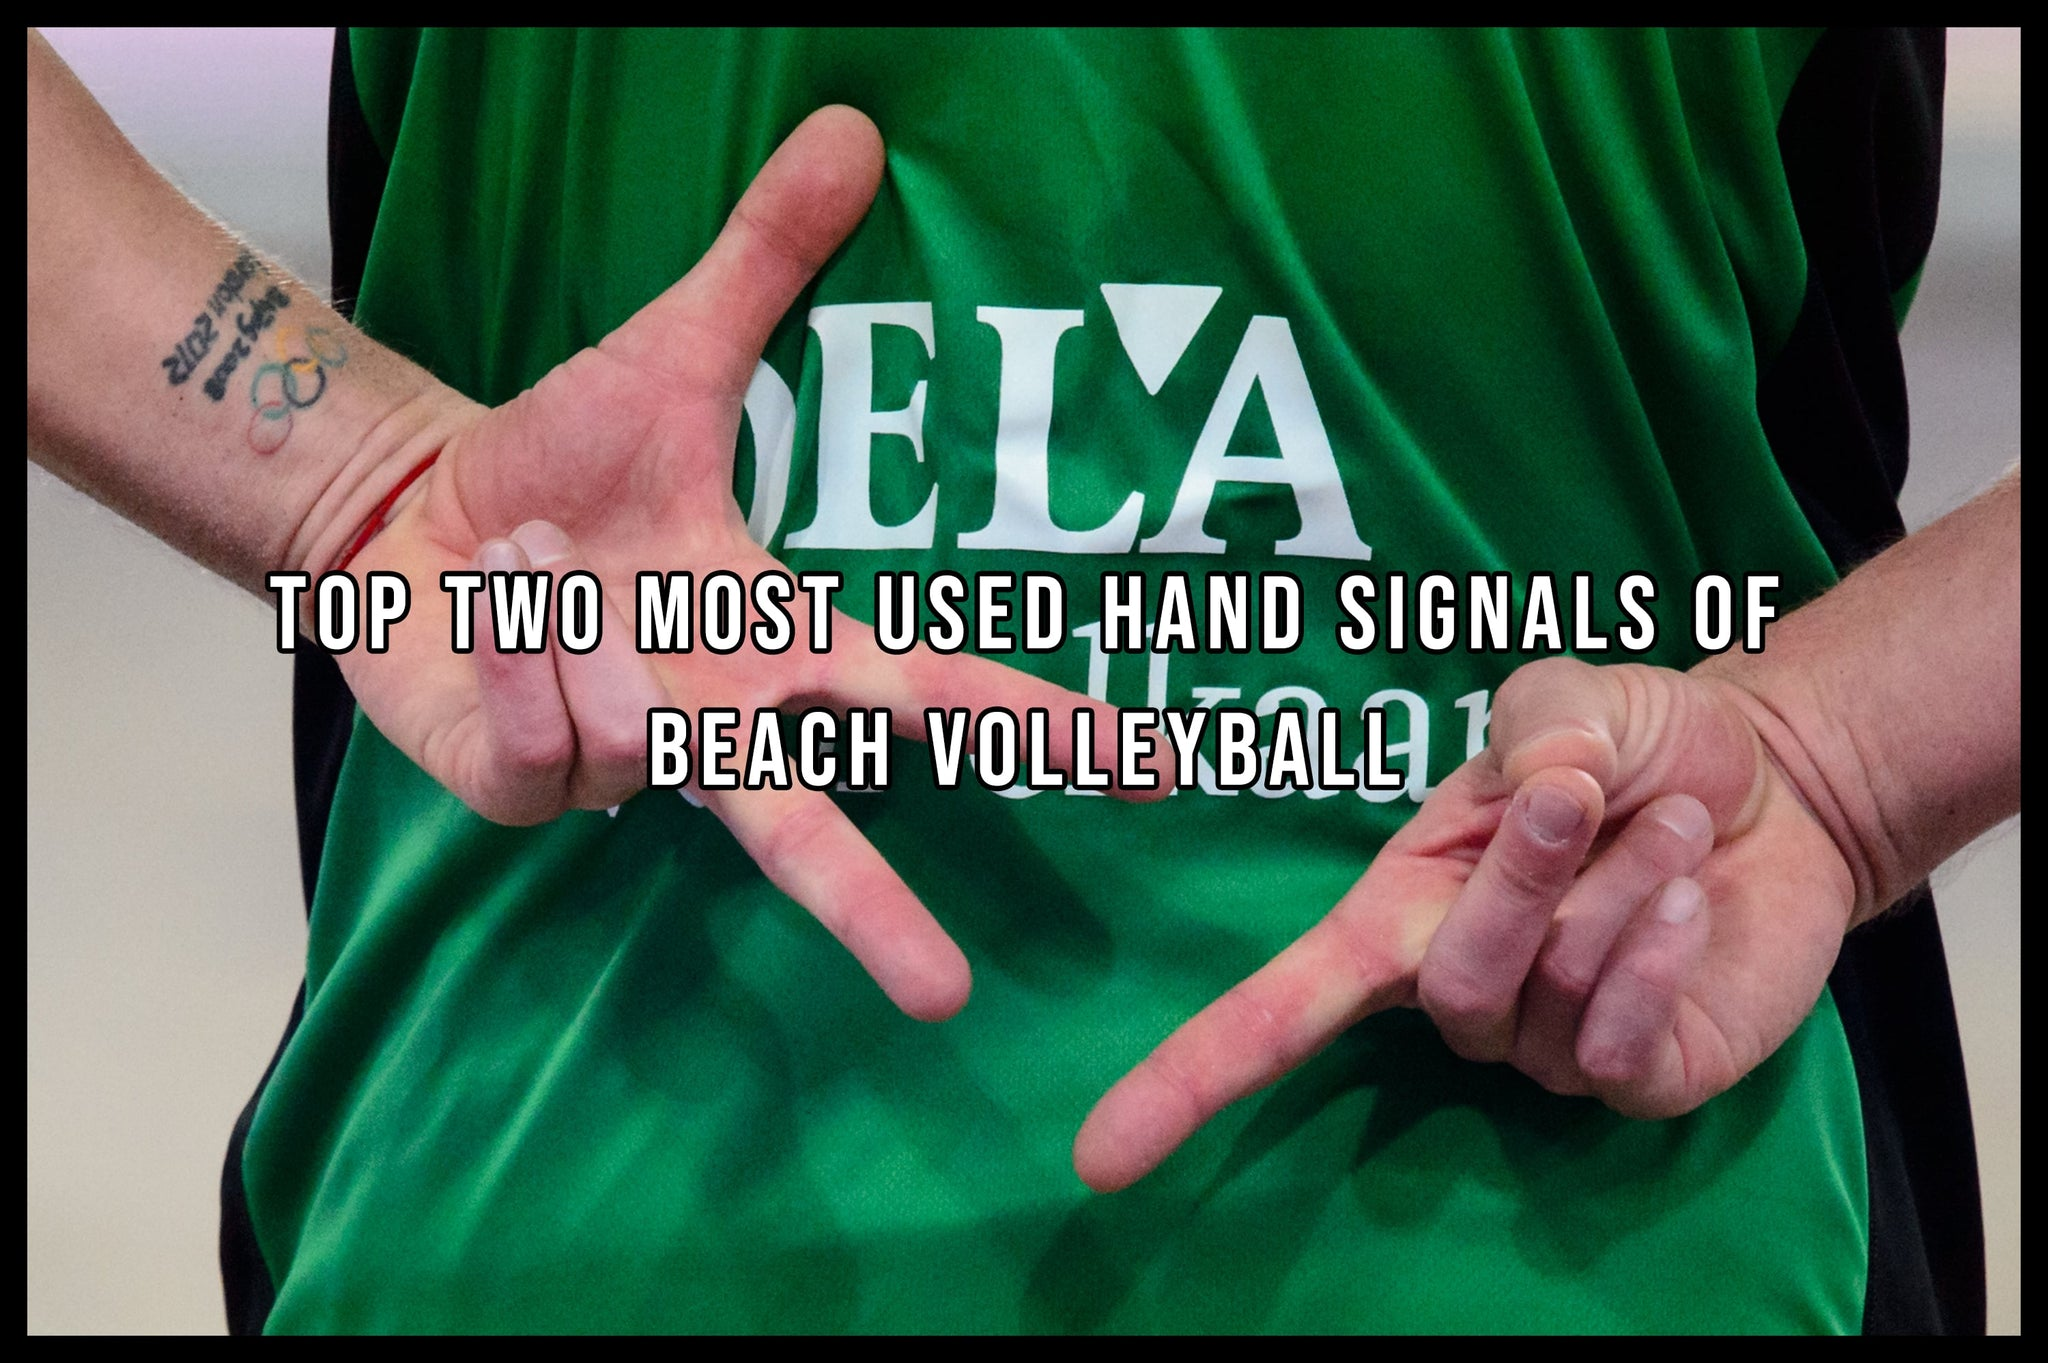 Top Two Most Used Hand Signals of Beach Volleyball